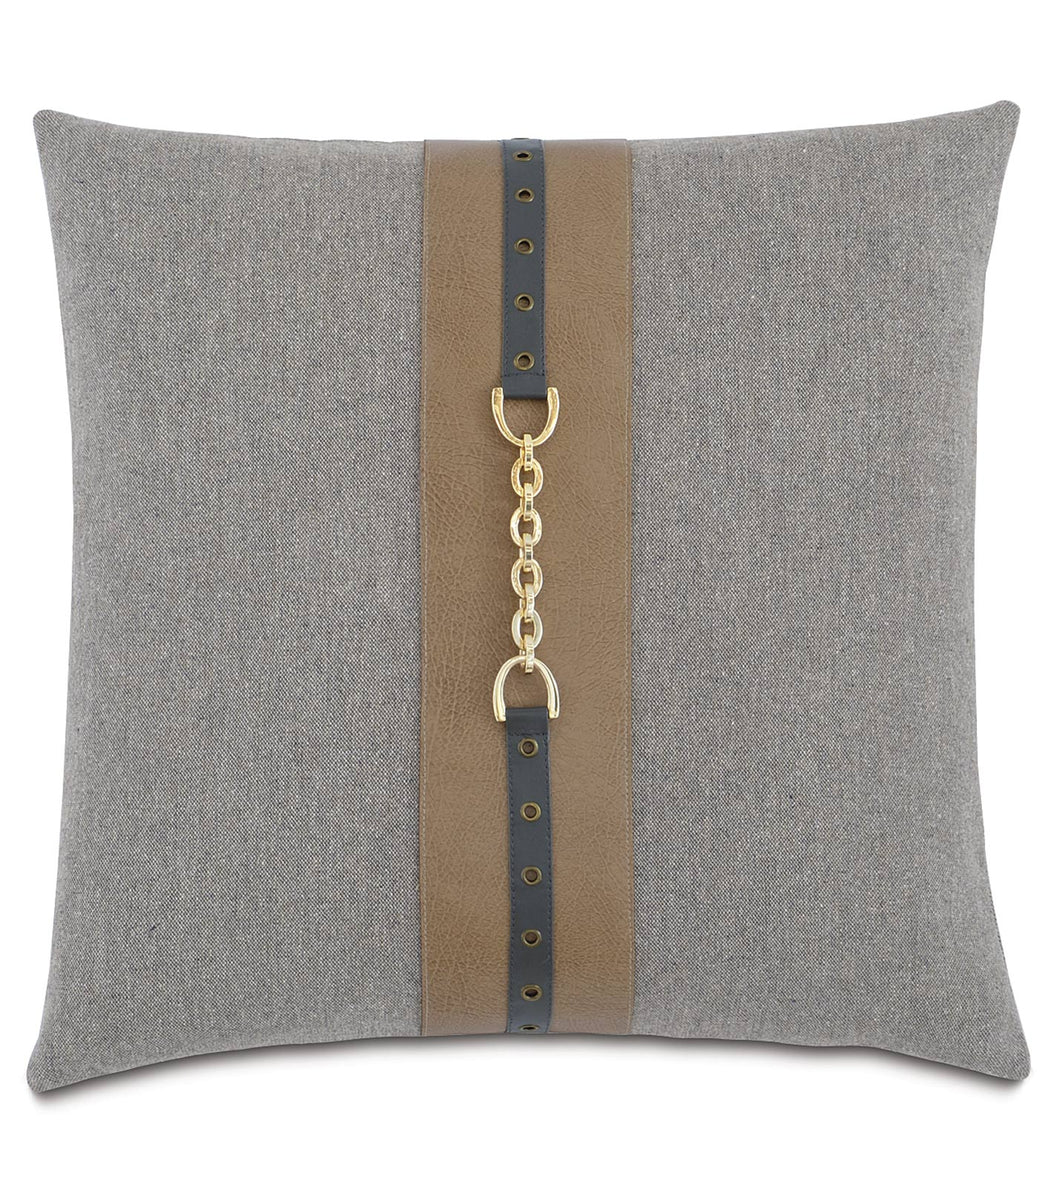 Arthur Modern Solid Cotton Accent Pillow in Slate Gray 20